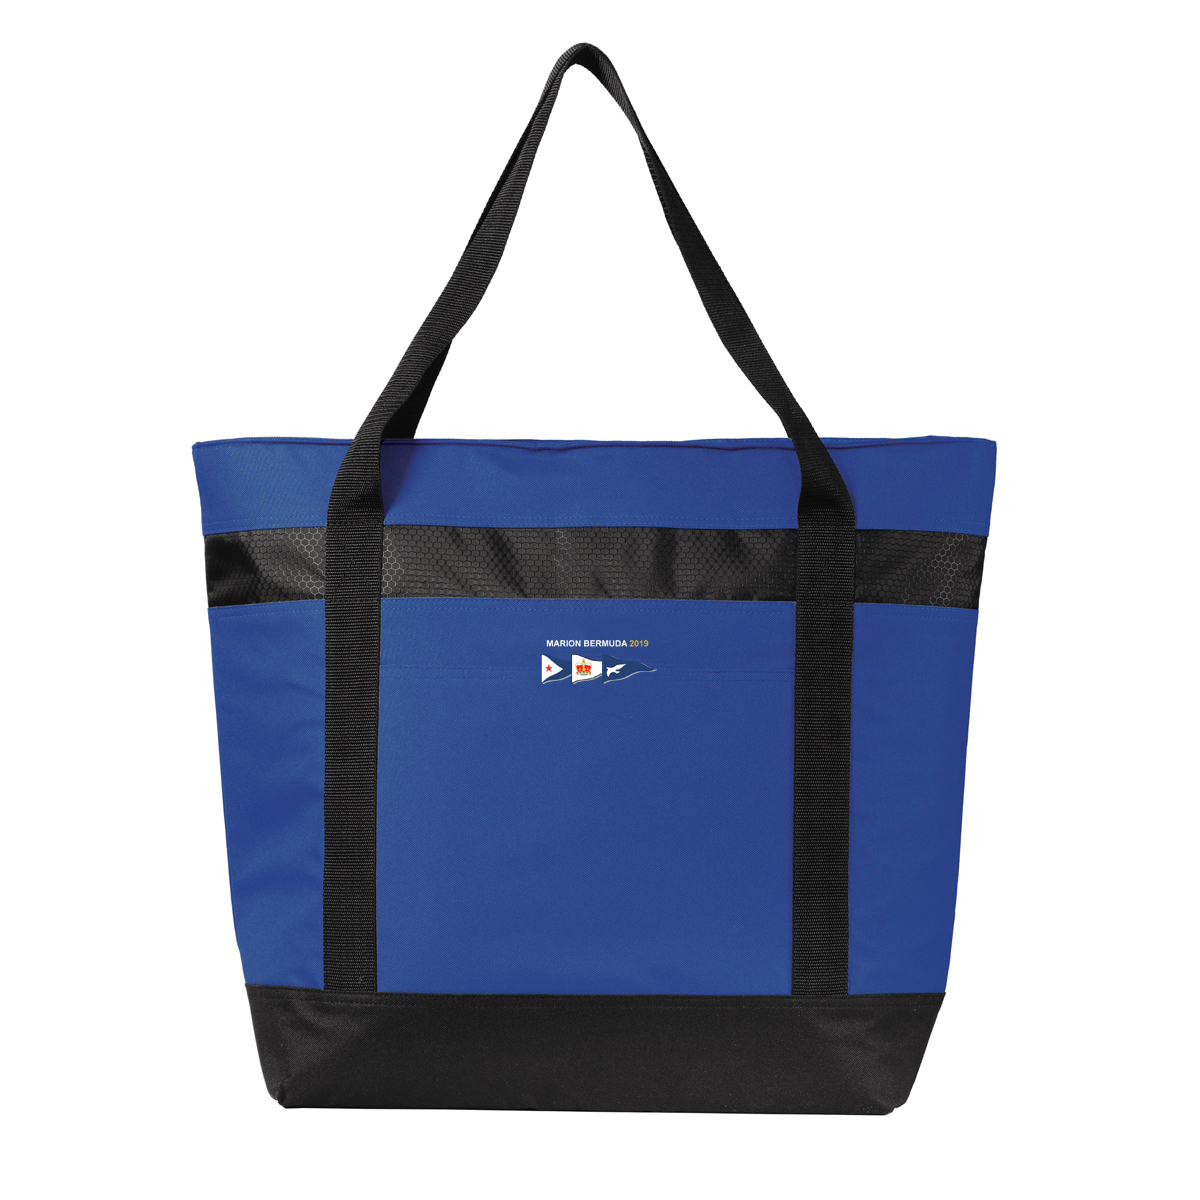 MBR  19  INSULATED COOLER TOTE